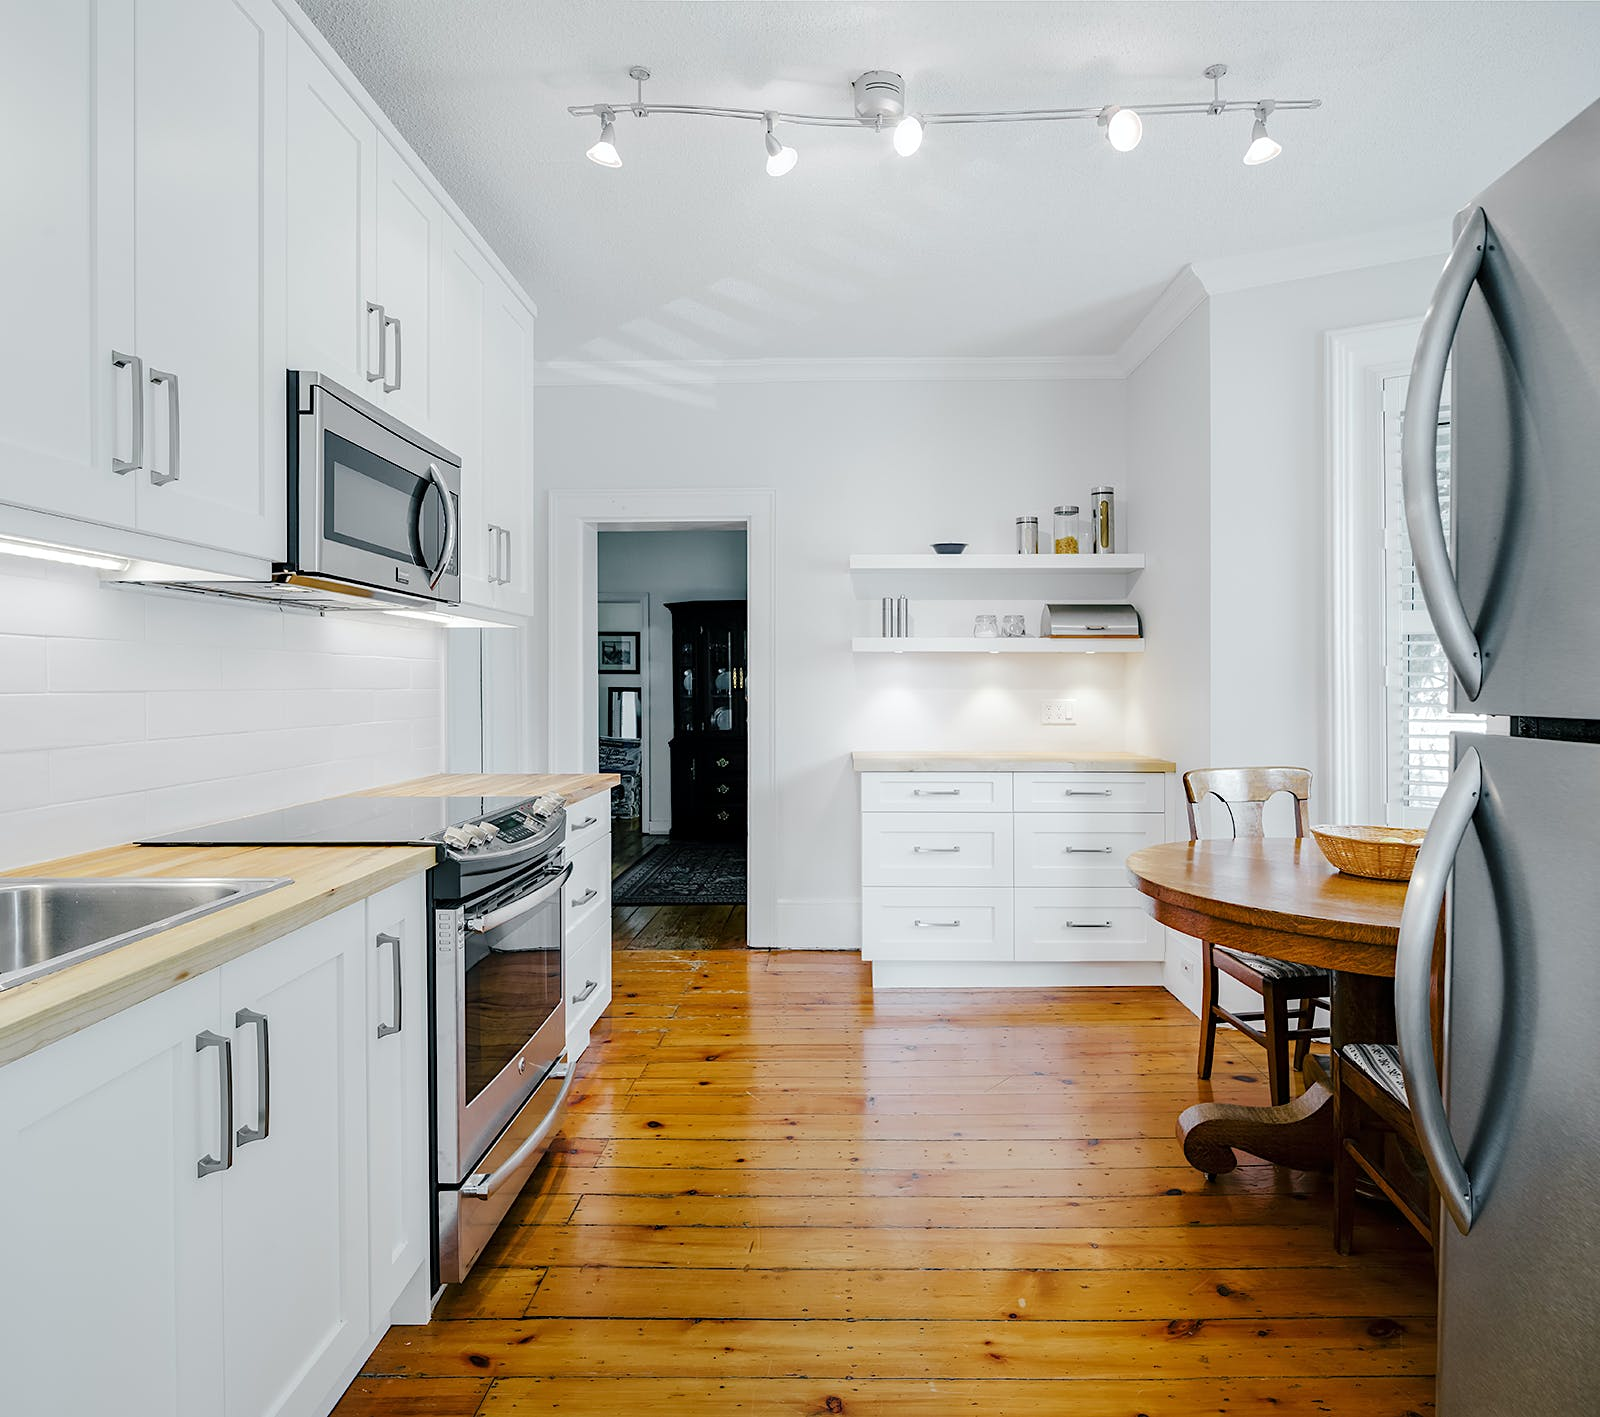 Real Time: Photography of this kitchen pushed me out of my comfort zone